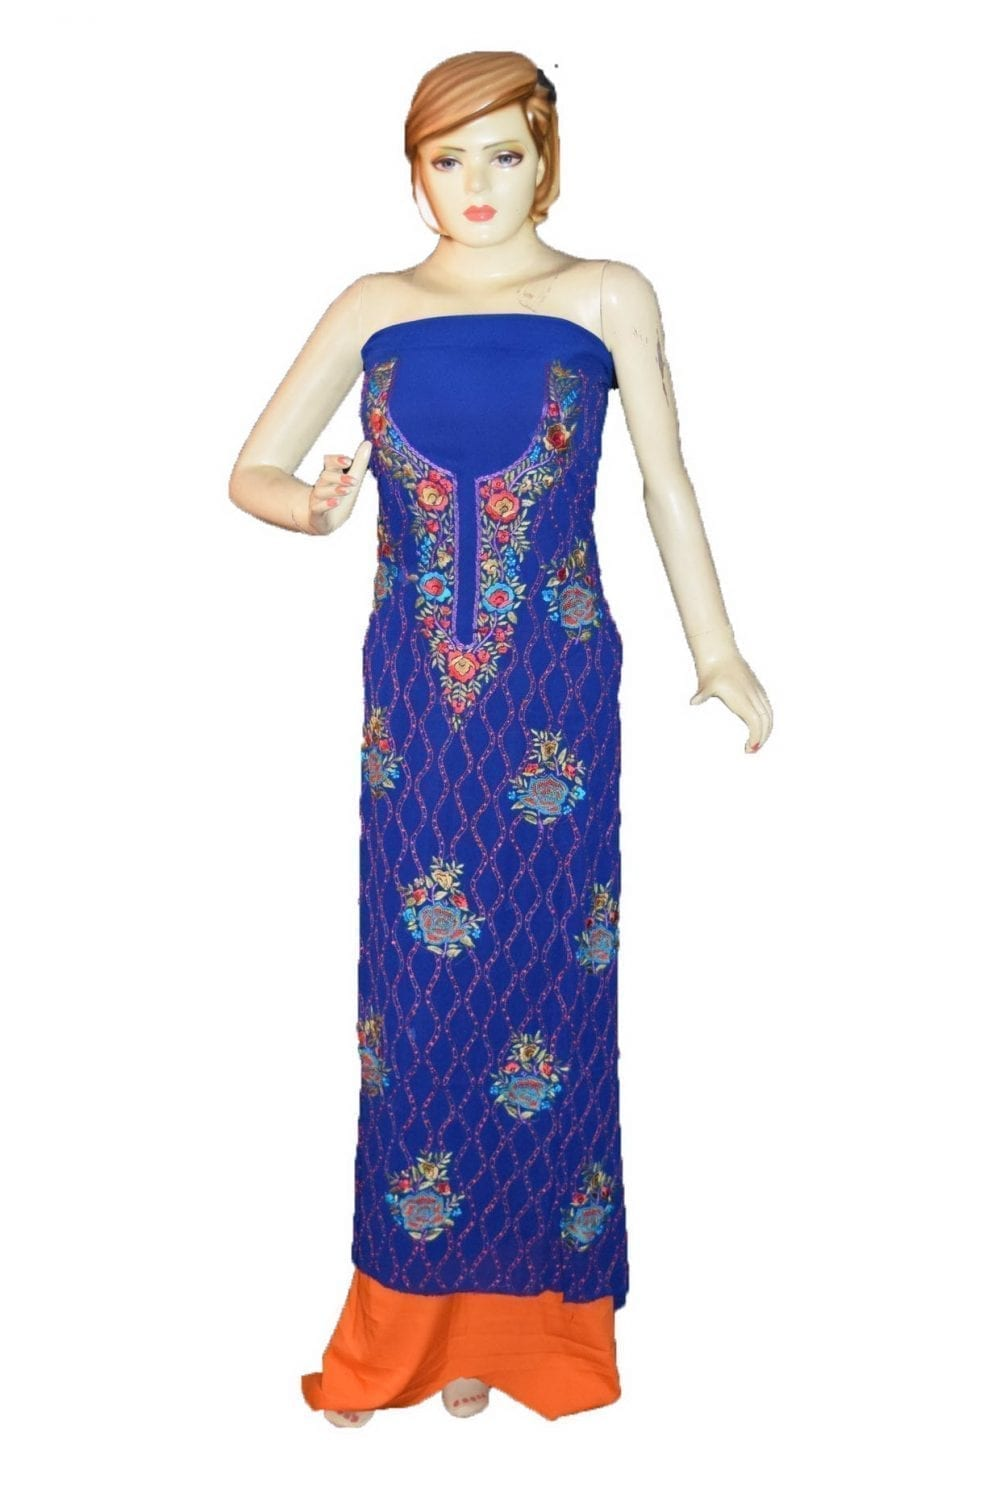 Royal Blue GEORGETTE LONG Kurti Hand Embroidered Party Wear Unstitched Fabric K0394 1